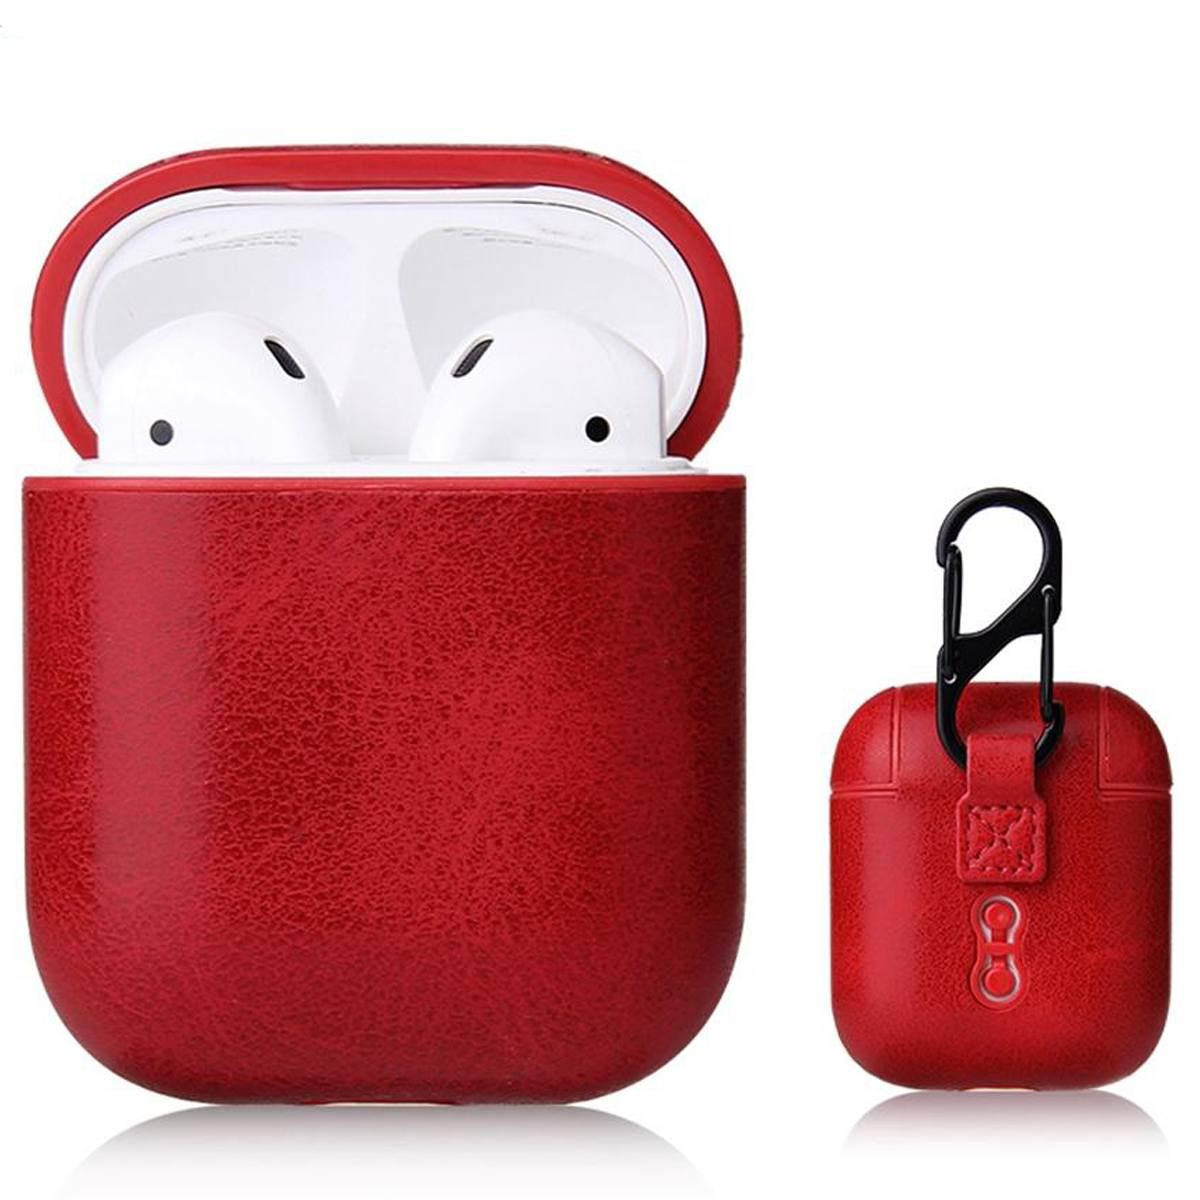 Case-For-Apple-Airpods-1-2-1st-2nd-Gen-Soft-Leather-Skin-Earphones-PU-Cover thumbnail 27